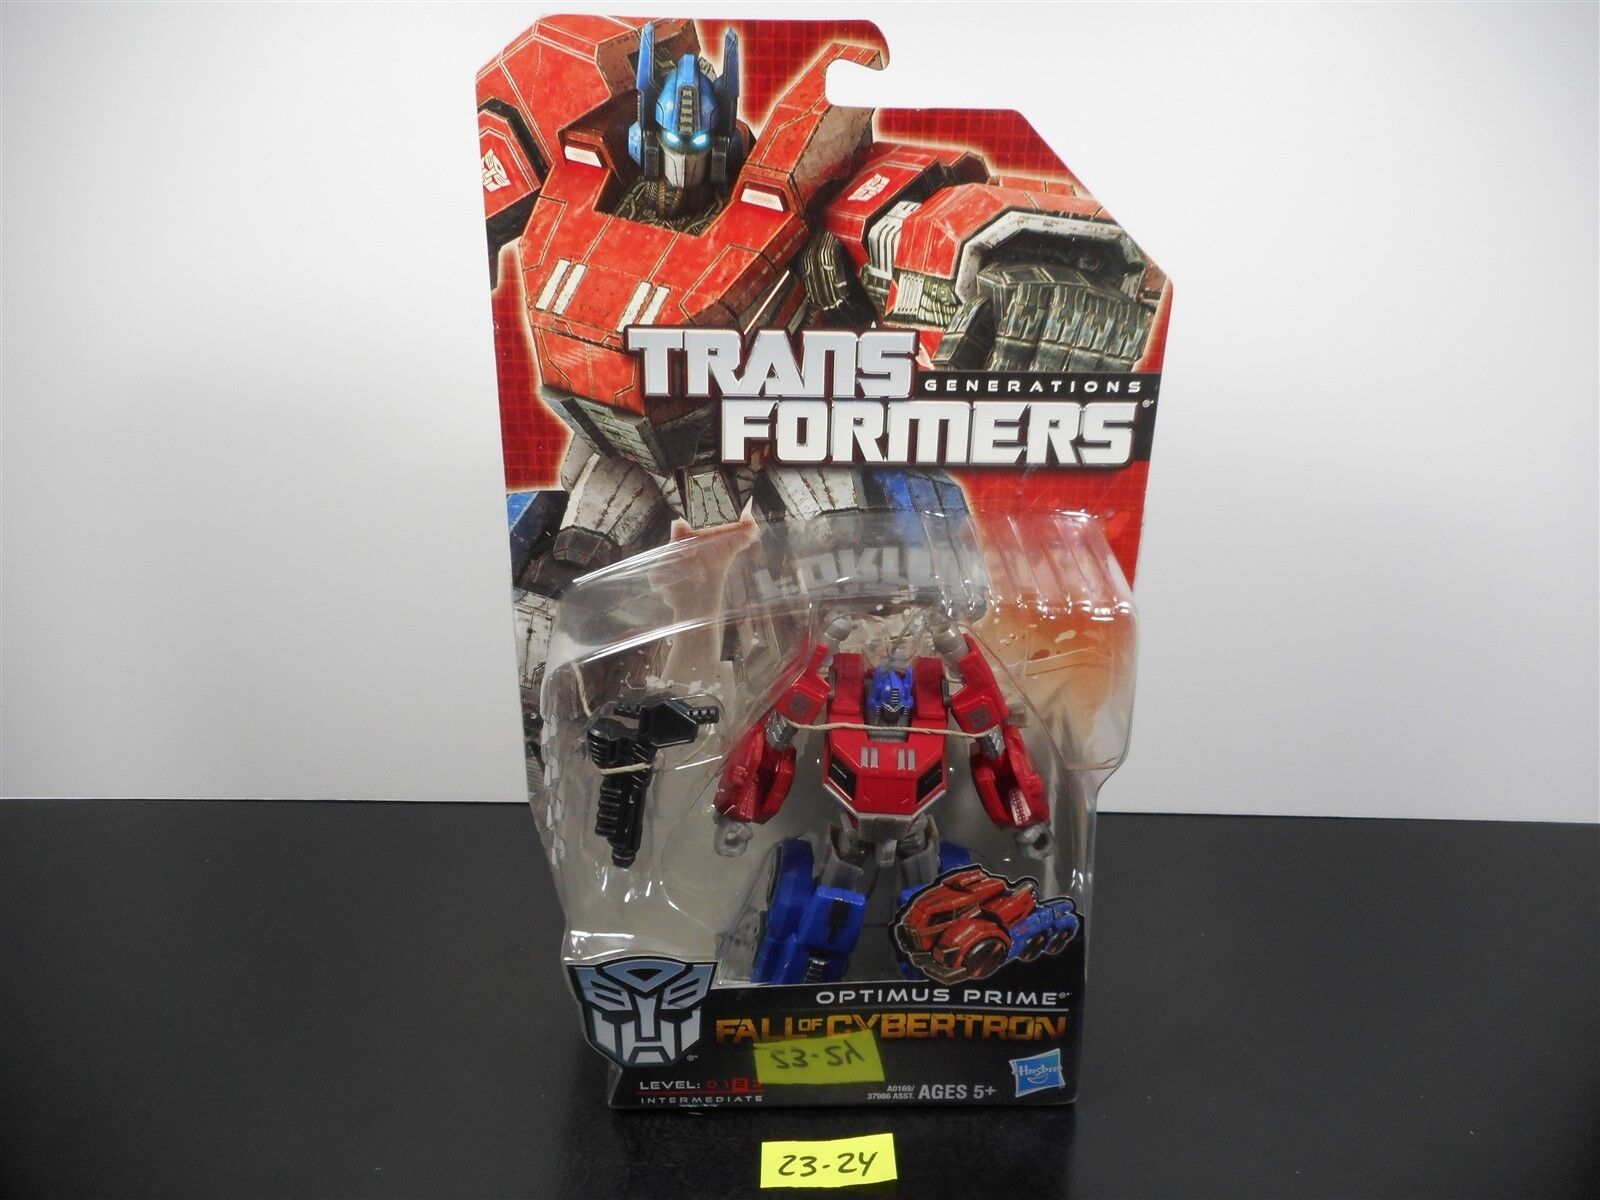 NEW & SEALED     TRANSFORMERS GENERATIONS FOC OPTIMUS PRIME 2011 DELUXE 23-24